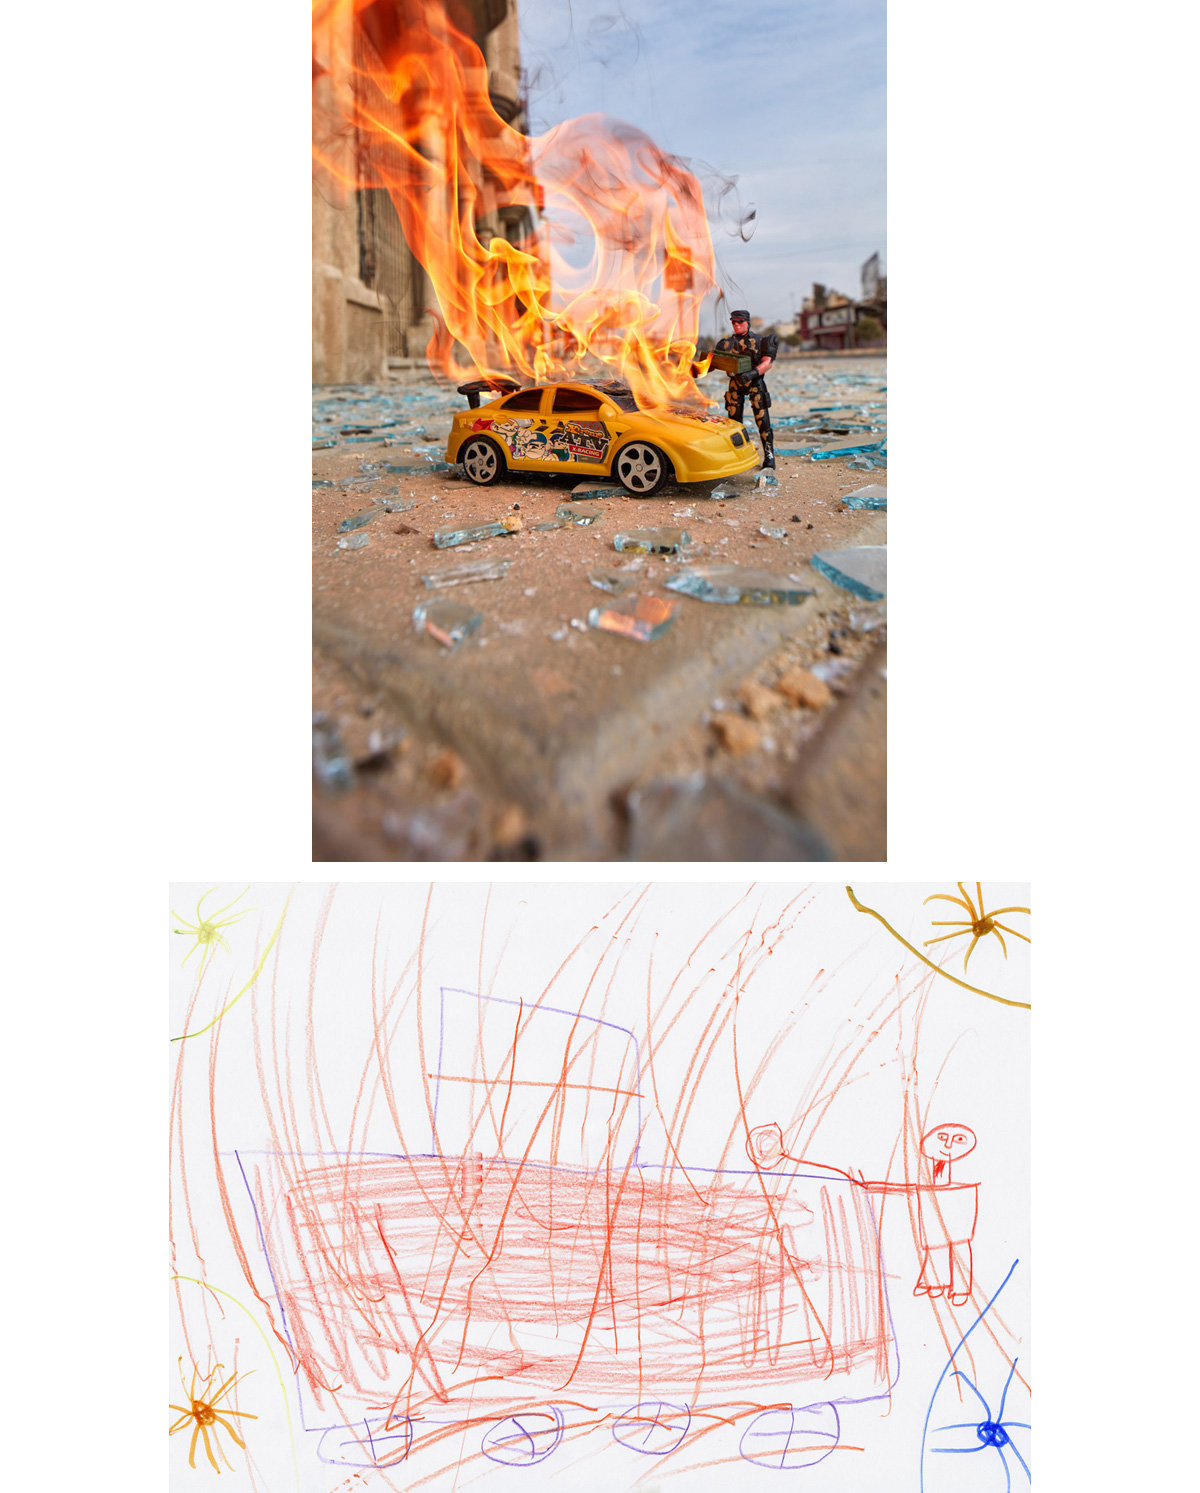 "Suicide Car Bomber - East Mosul, Iraq2017Inside the Hassansham IDP Camp, at a Child Friendly Space provided by TdH Italia and UNICEF, a young girl named ""Shadiya"" made a drawing of what she said was a Daesh soldier placing a bomb onto a car. She then violently filled the page with orange and yellow scribbles that covered the vehicle and figure, showing an explosion. Days later, the girl's account was recreated in East Mosul using locally found toys that were placed, posed, and set ablaze in shards of glass from a building destroyed by a suicide car bomber. A young militant, not too much older than other children in the camp, had driven a car loaded with explosives into the frontlines of Iraqi forces trying to retake the city from ISIS."